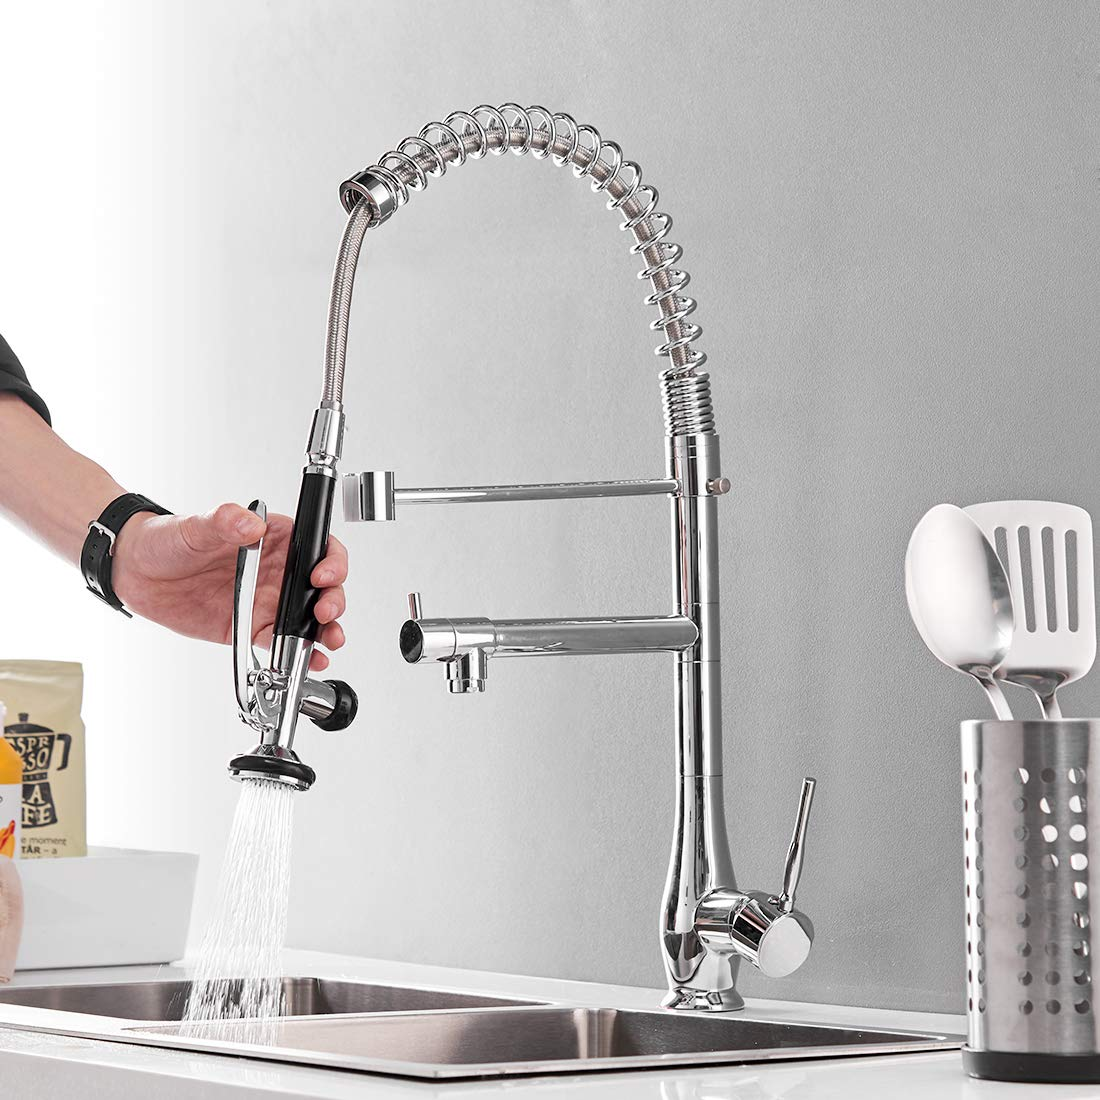 Commercial Pull Down Kitchen Faucet with Sprayer,GIMILI High Arch Single Hole Single Handle Kitchen Sink Faucet,Chrome